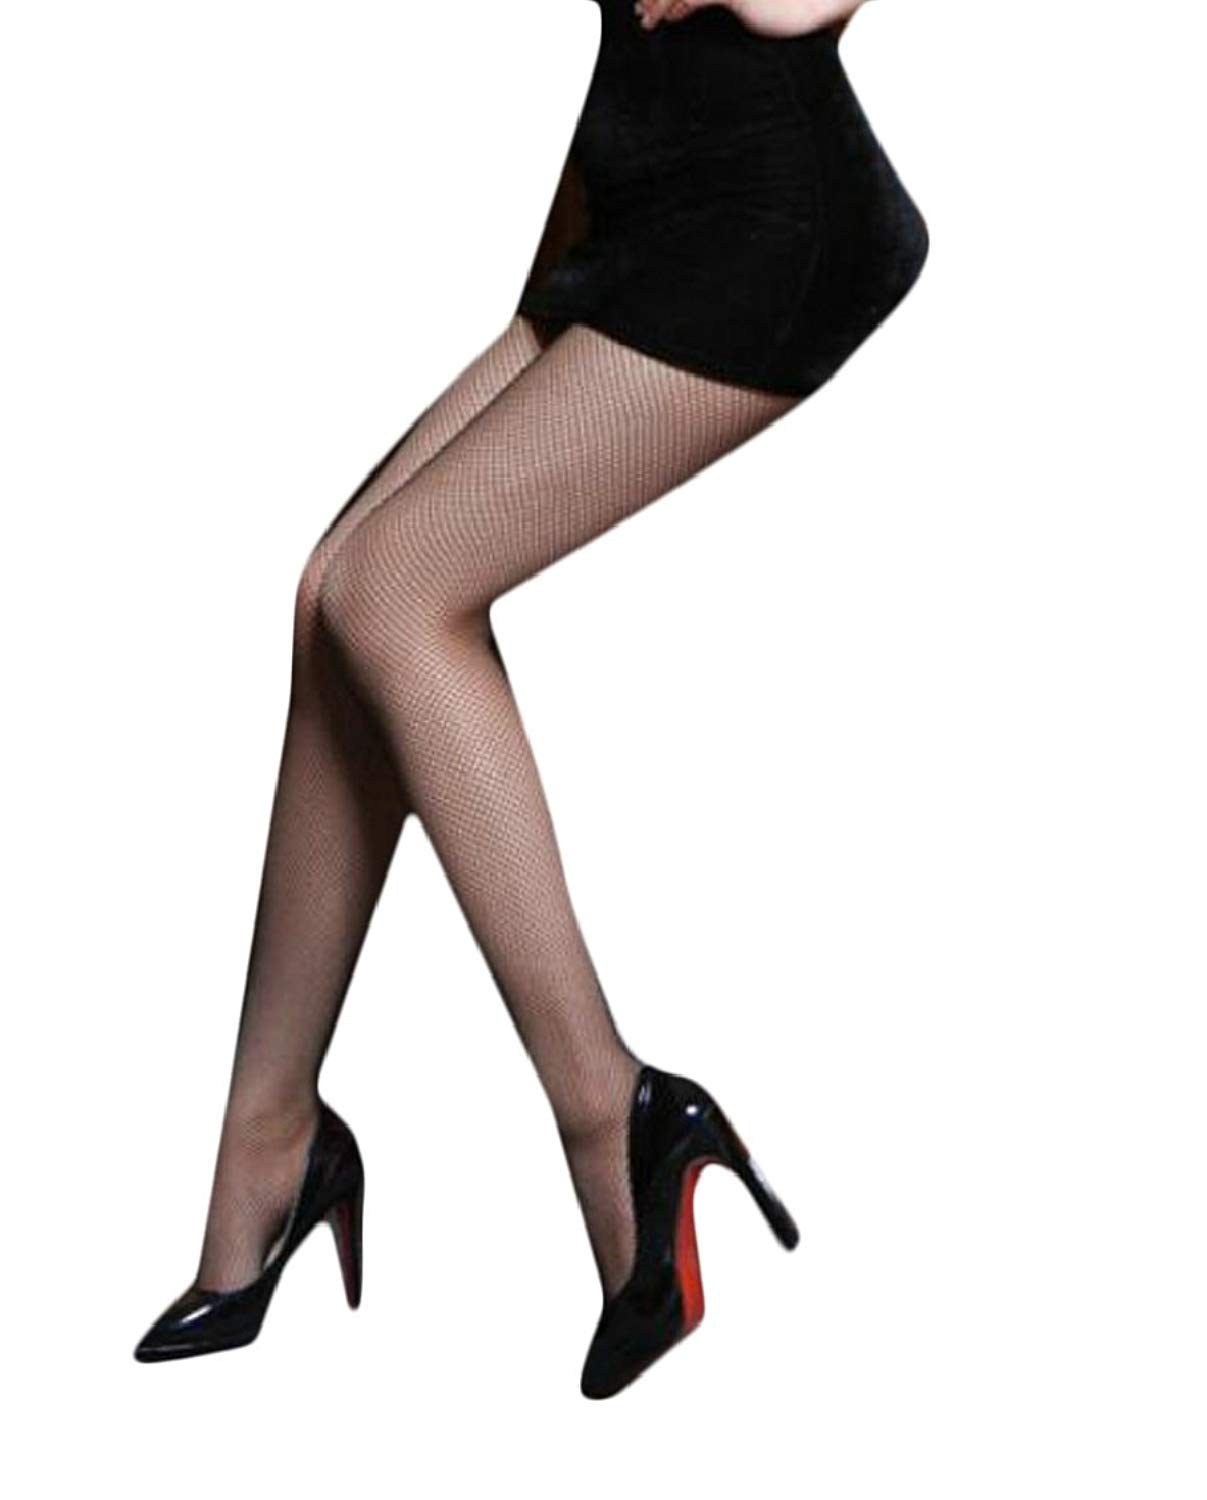 fbe7bb4e516 Get Quotations · Jmwss QD Womens Fishnet Stockings Pantyhose Sexy Mesh  Thights Hosiery